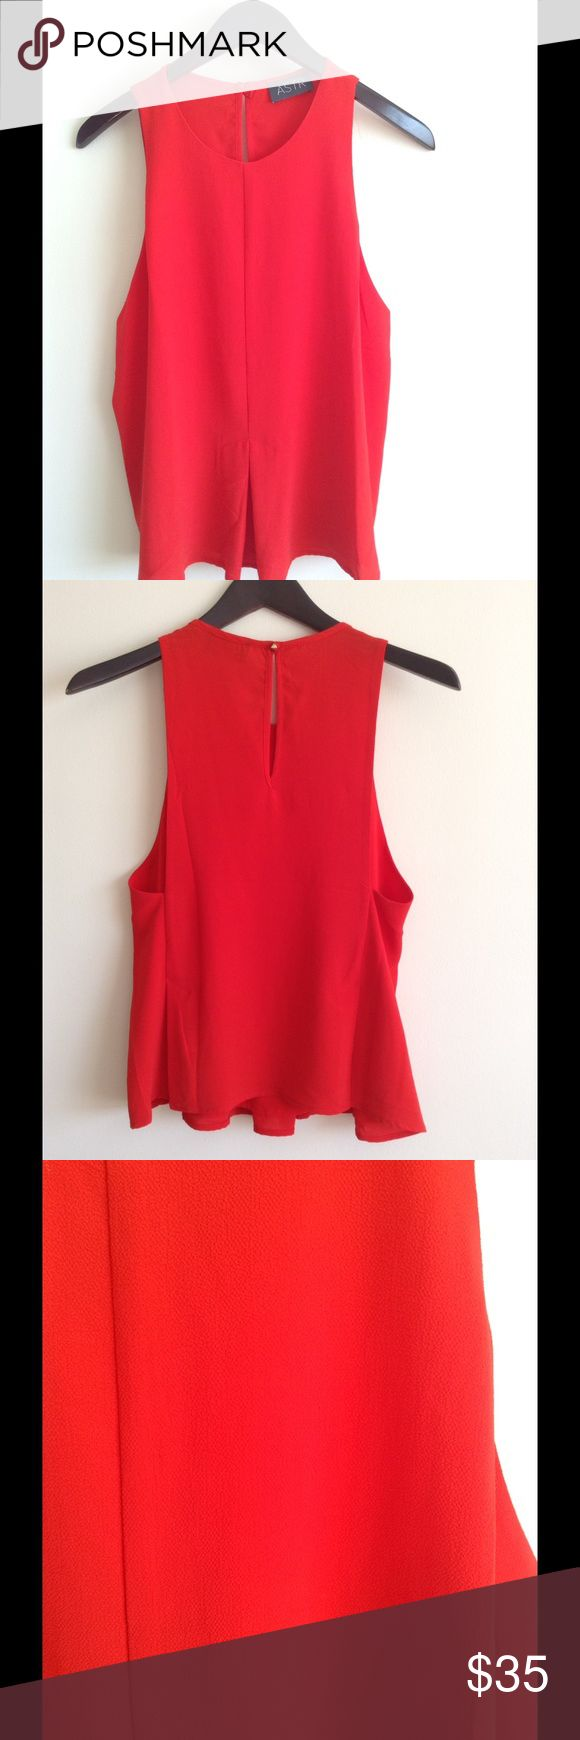 Red Astr Tank Top Brand new. Red tank top for dressy occasions Astr Tops Tank Tops